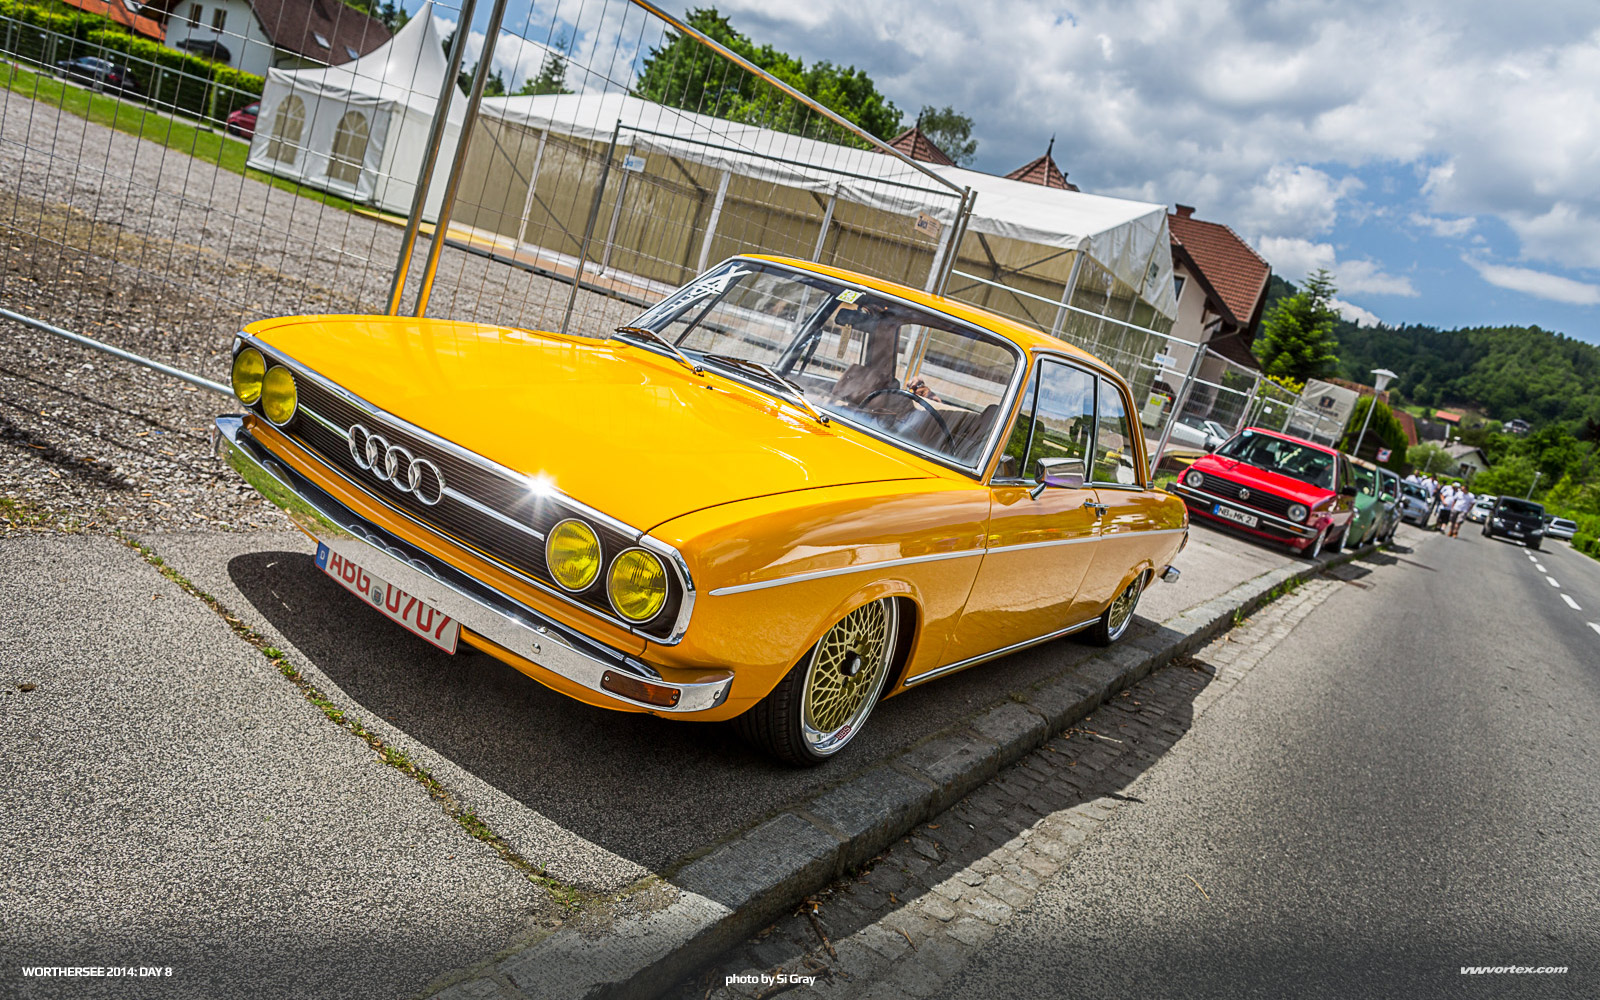 2014-Worthersee-Day-8-Si-Gray-1113